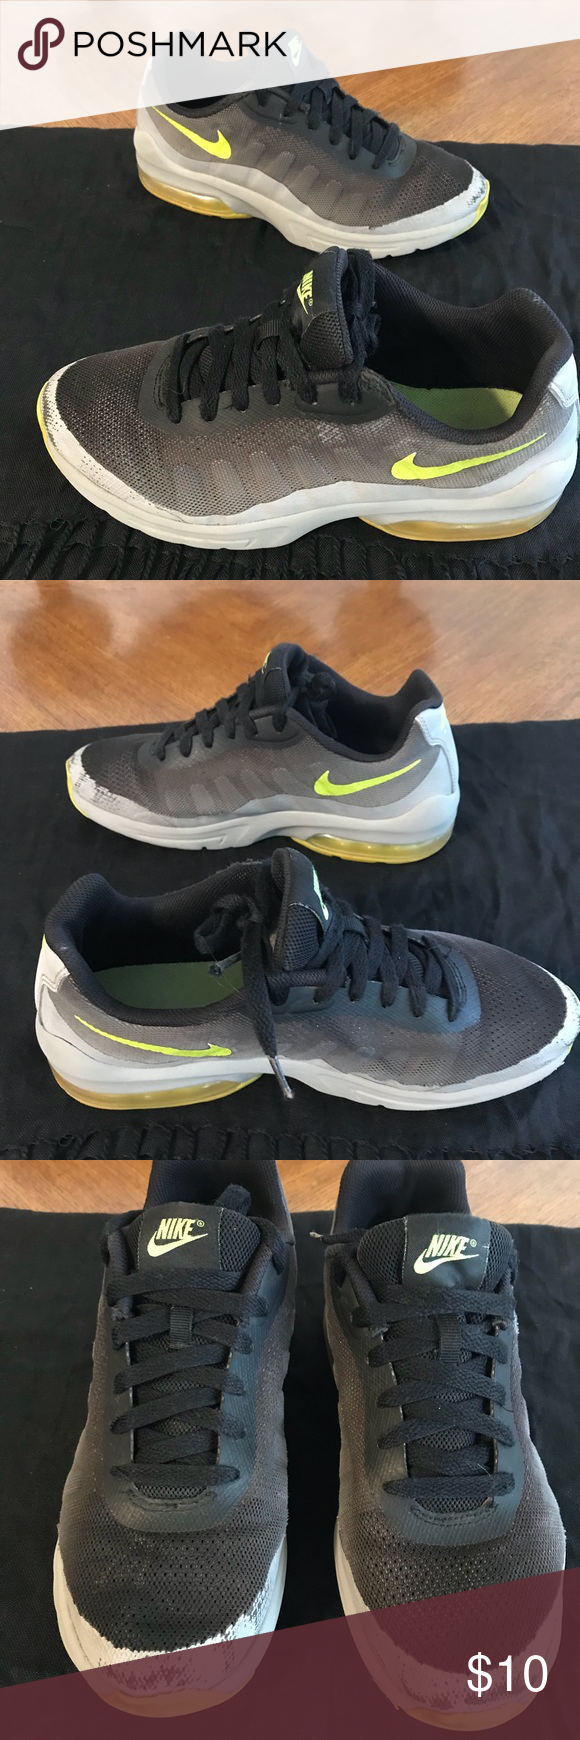 Nike Air Athletic Shoes Youth Size 6 Black and neon yellow Nike Air  Athletic Shoes. 2ea4edcae